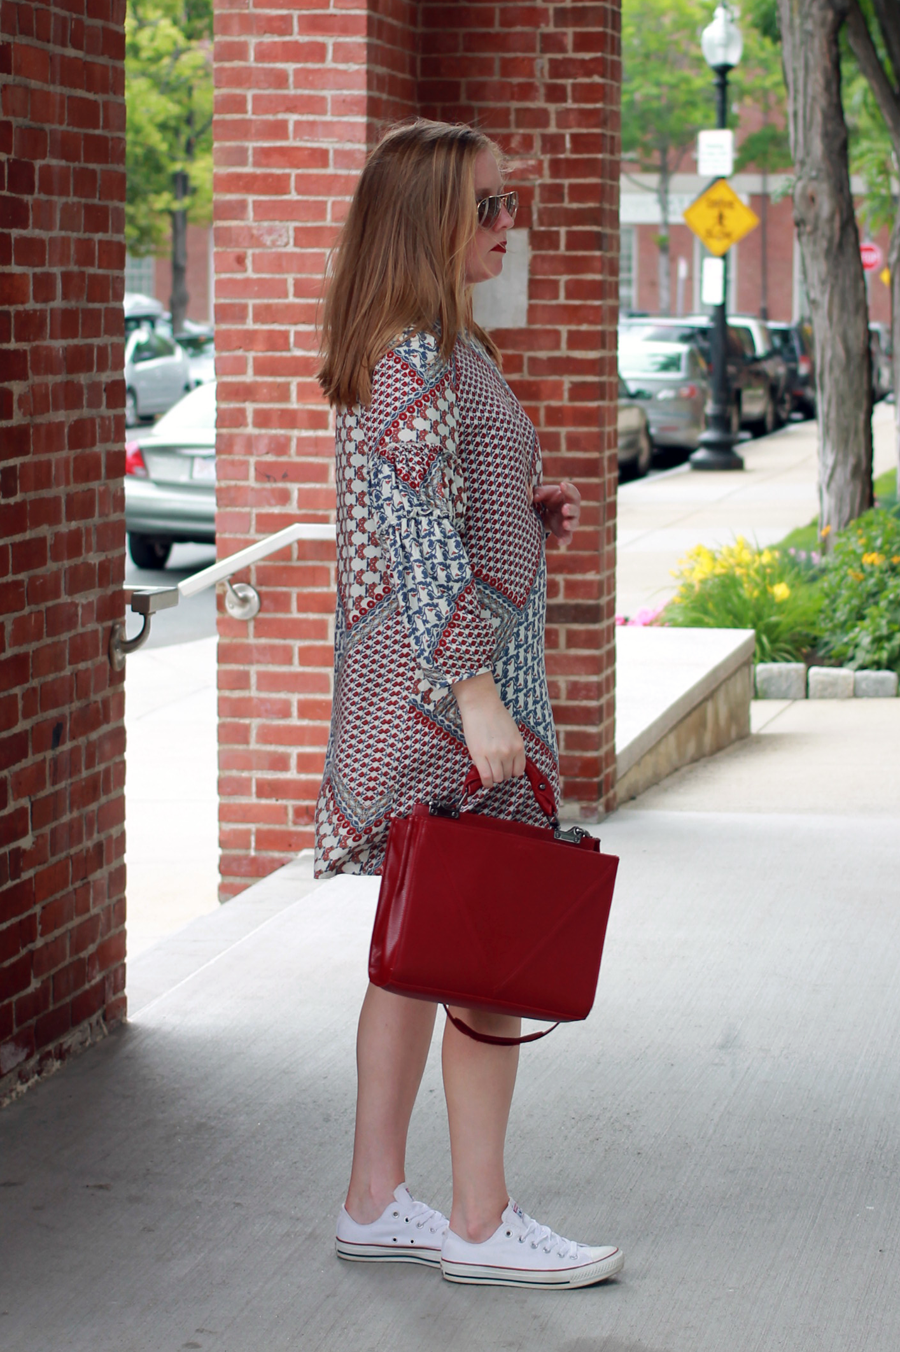 boston style blogger, pier 6 boston, what i wore boston, boston style guide, boston eats blog, wayf patchwork dress, shopbop patchwork dress,